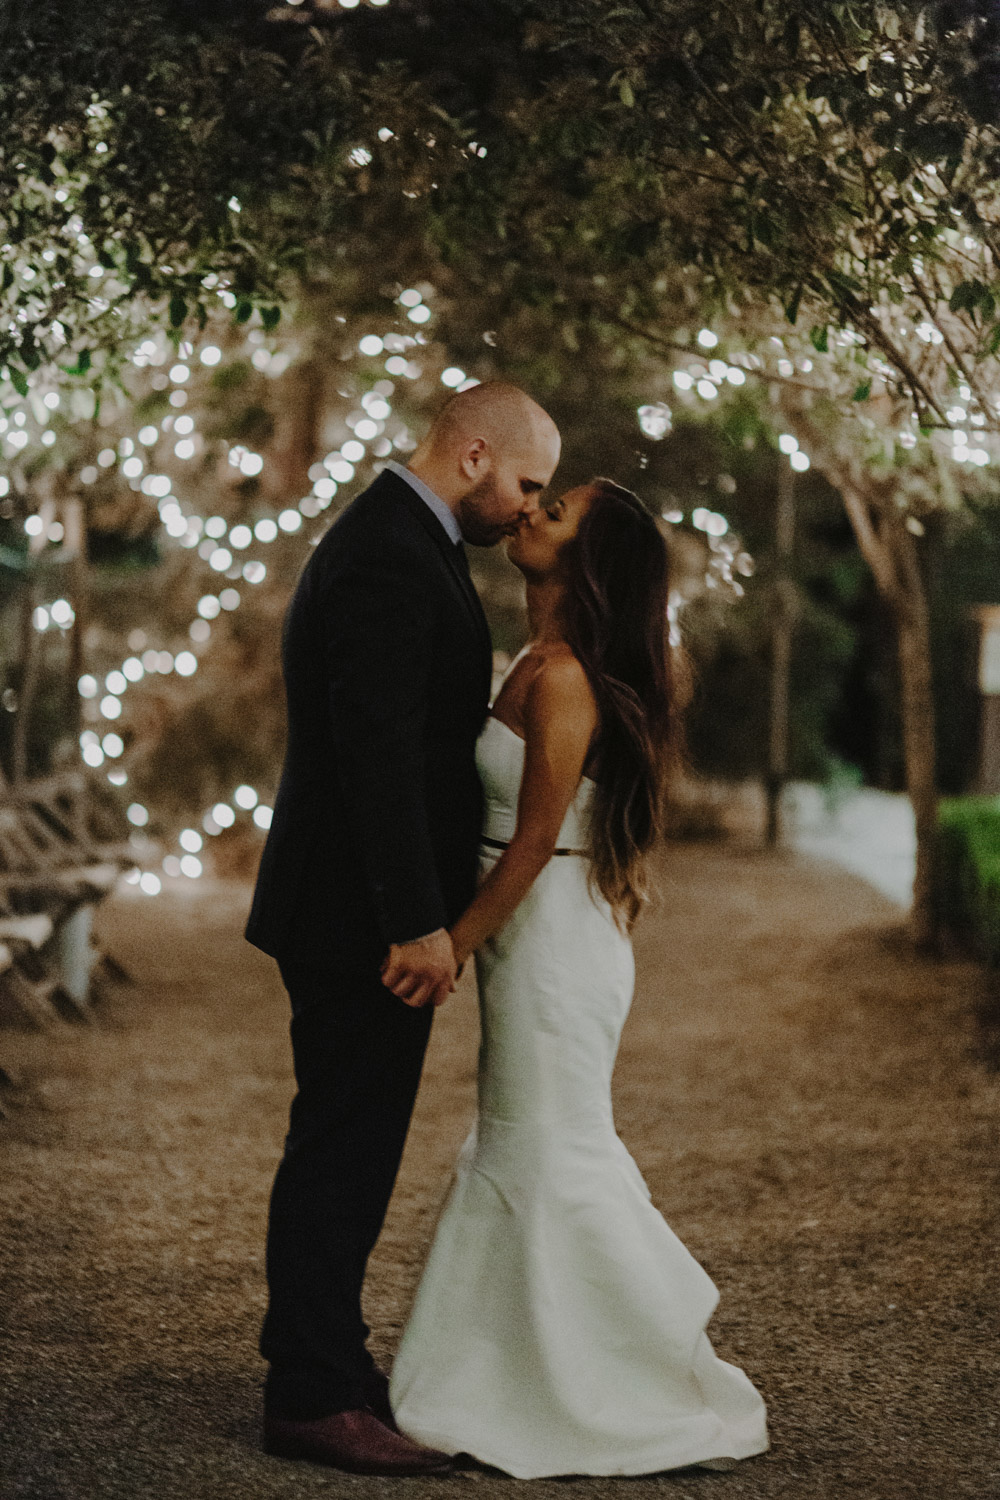 Greg-Petersen-San-Francisco-Wedding-Photographer-1-110.jpg